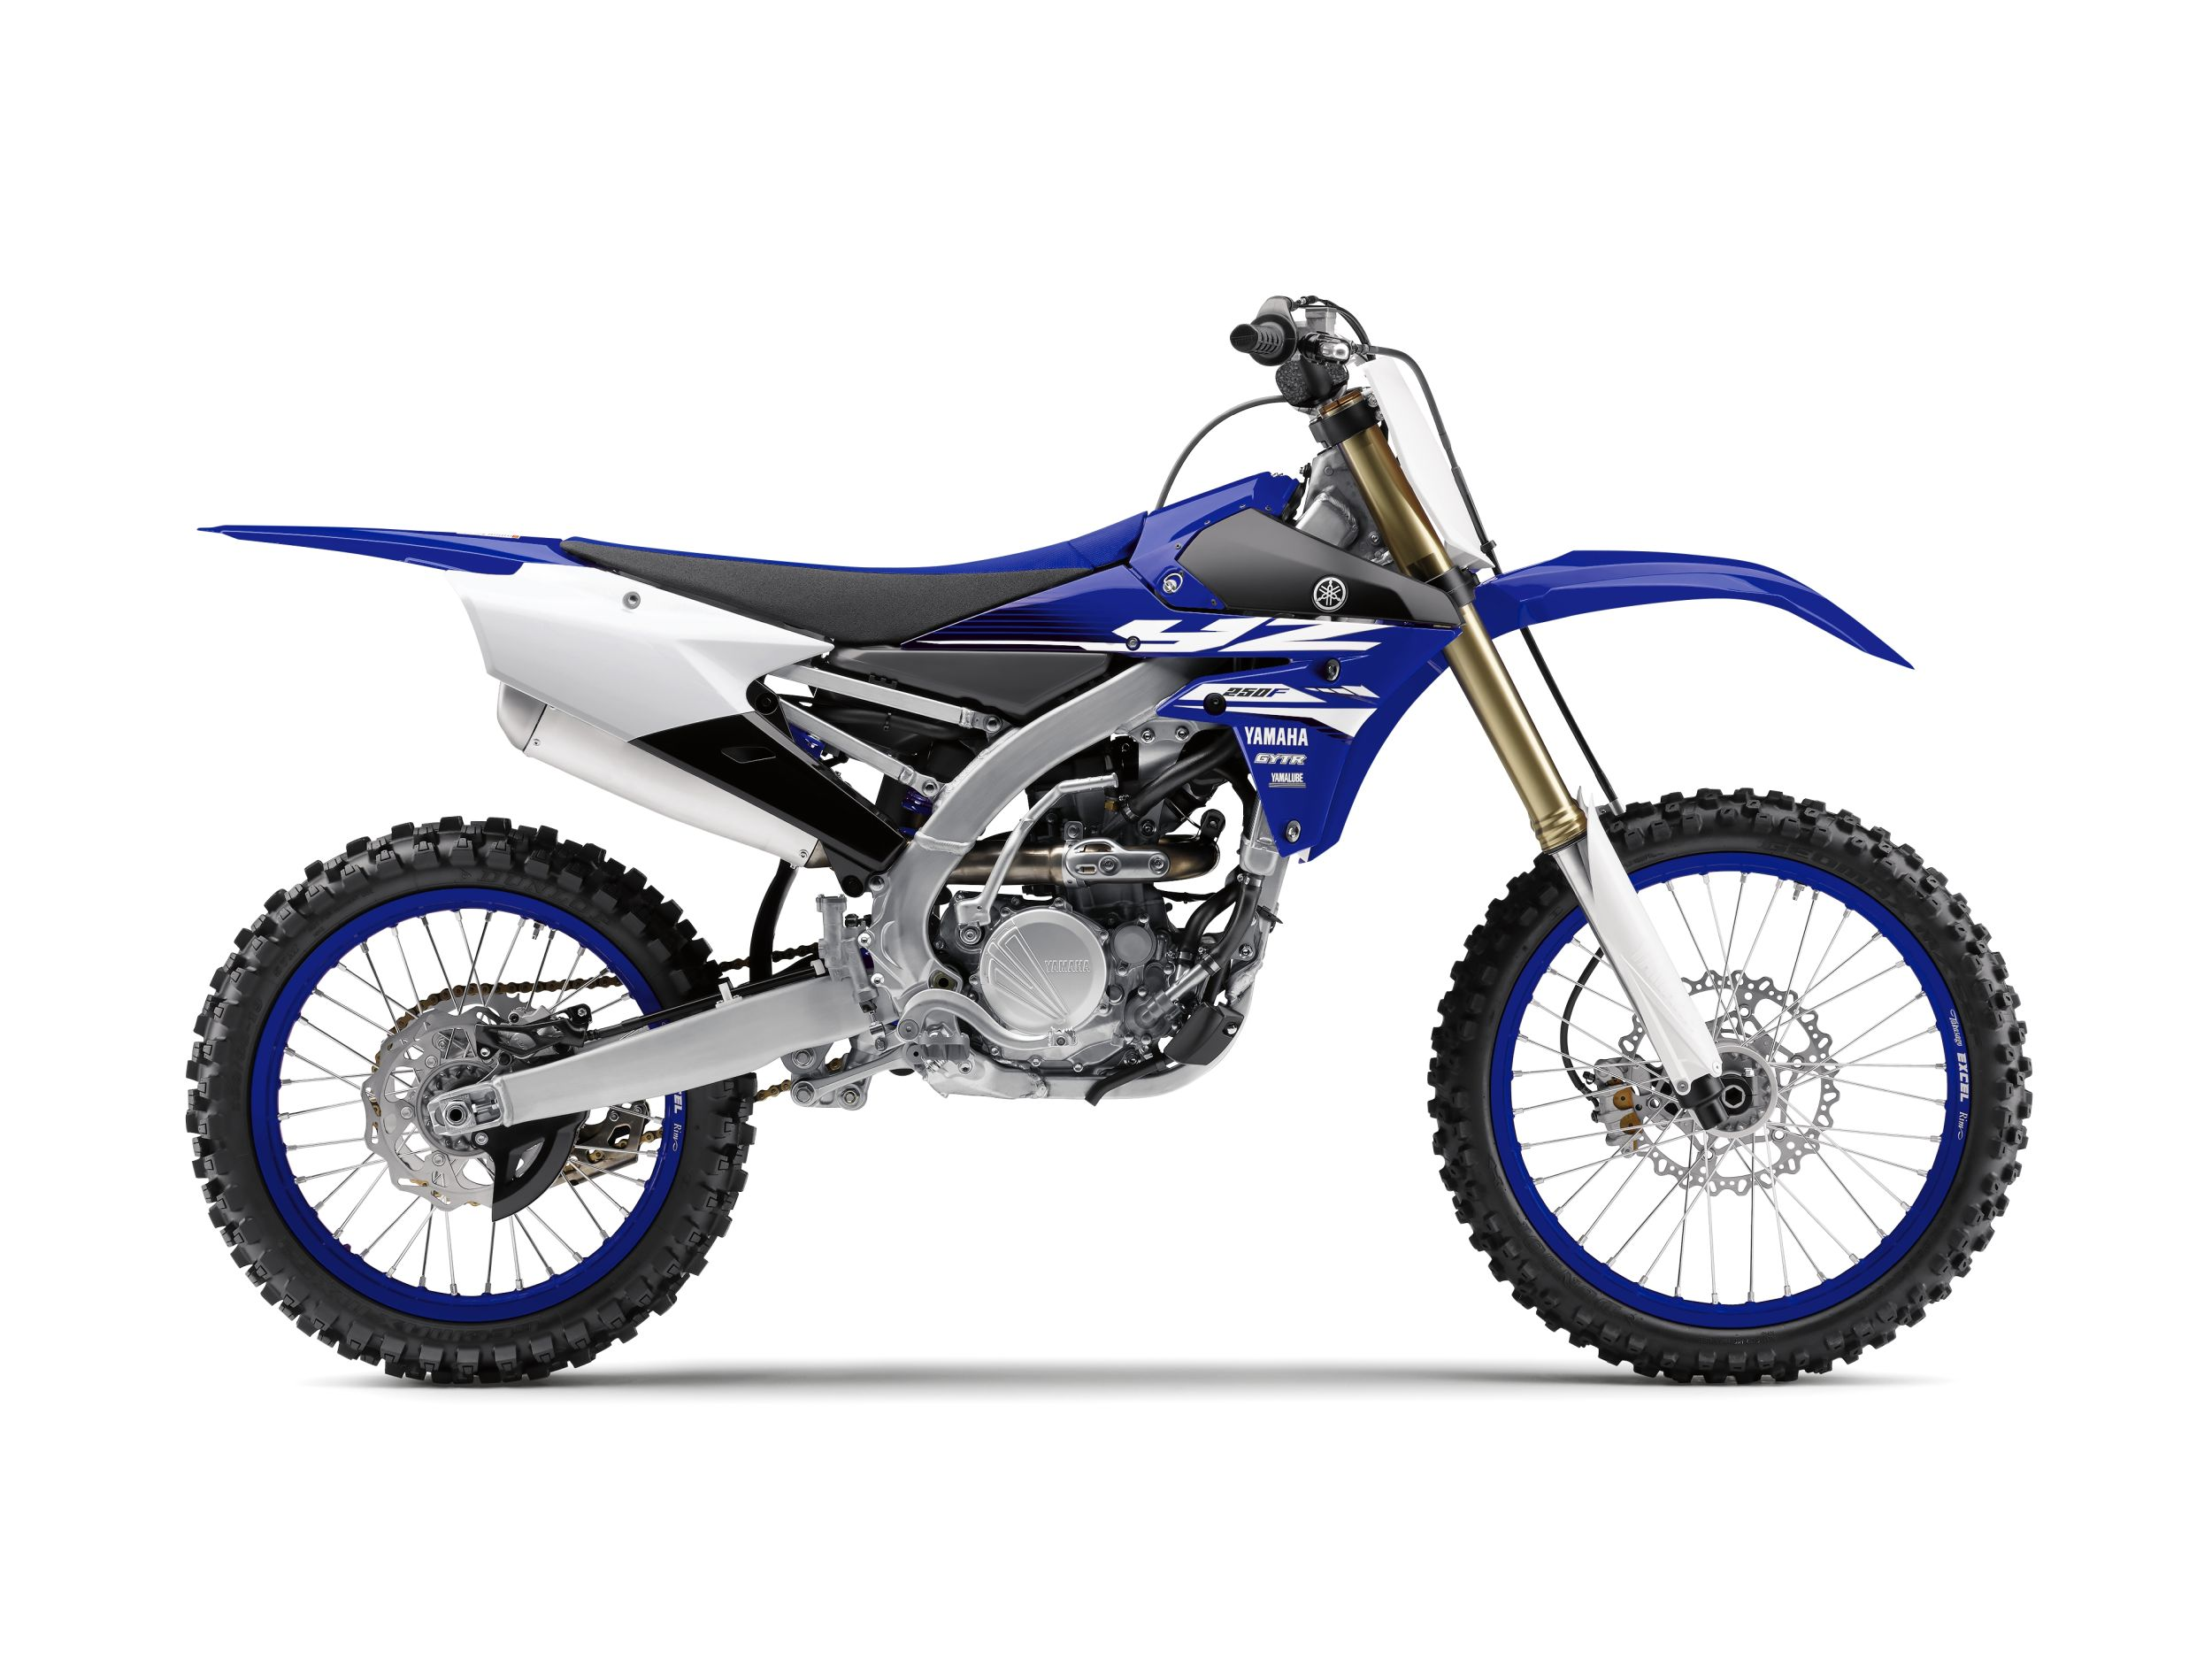 gebrauchte yamaha yz 250f motorr der kaufen. Black Bedroom Furniture Sets. Home Design Ideas